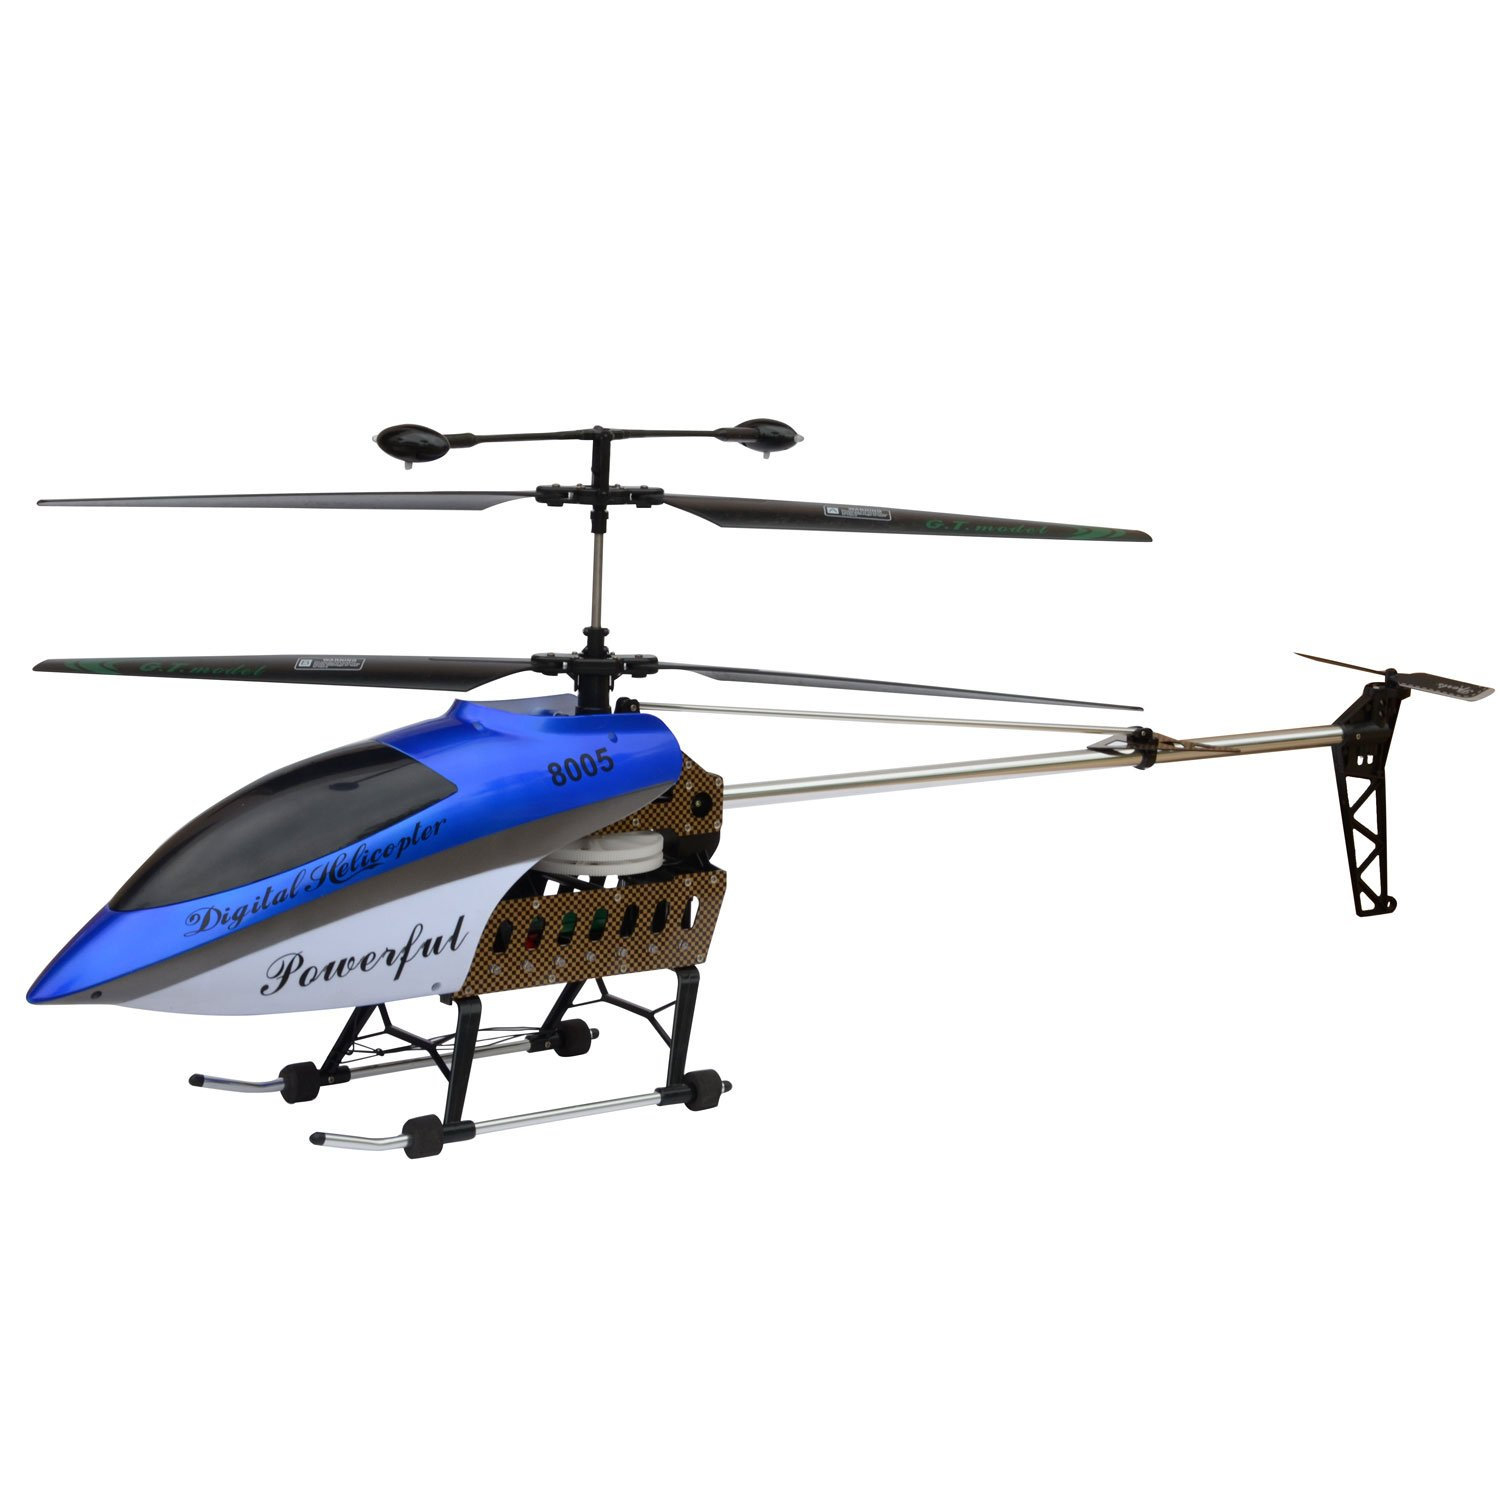 "HomCom 41"" Electric Flying 3.5CH Remote Control Dual Blade R/C Helicopter - Blue at Sears.com"